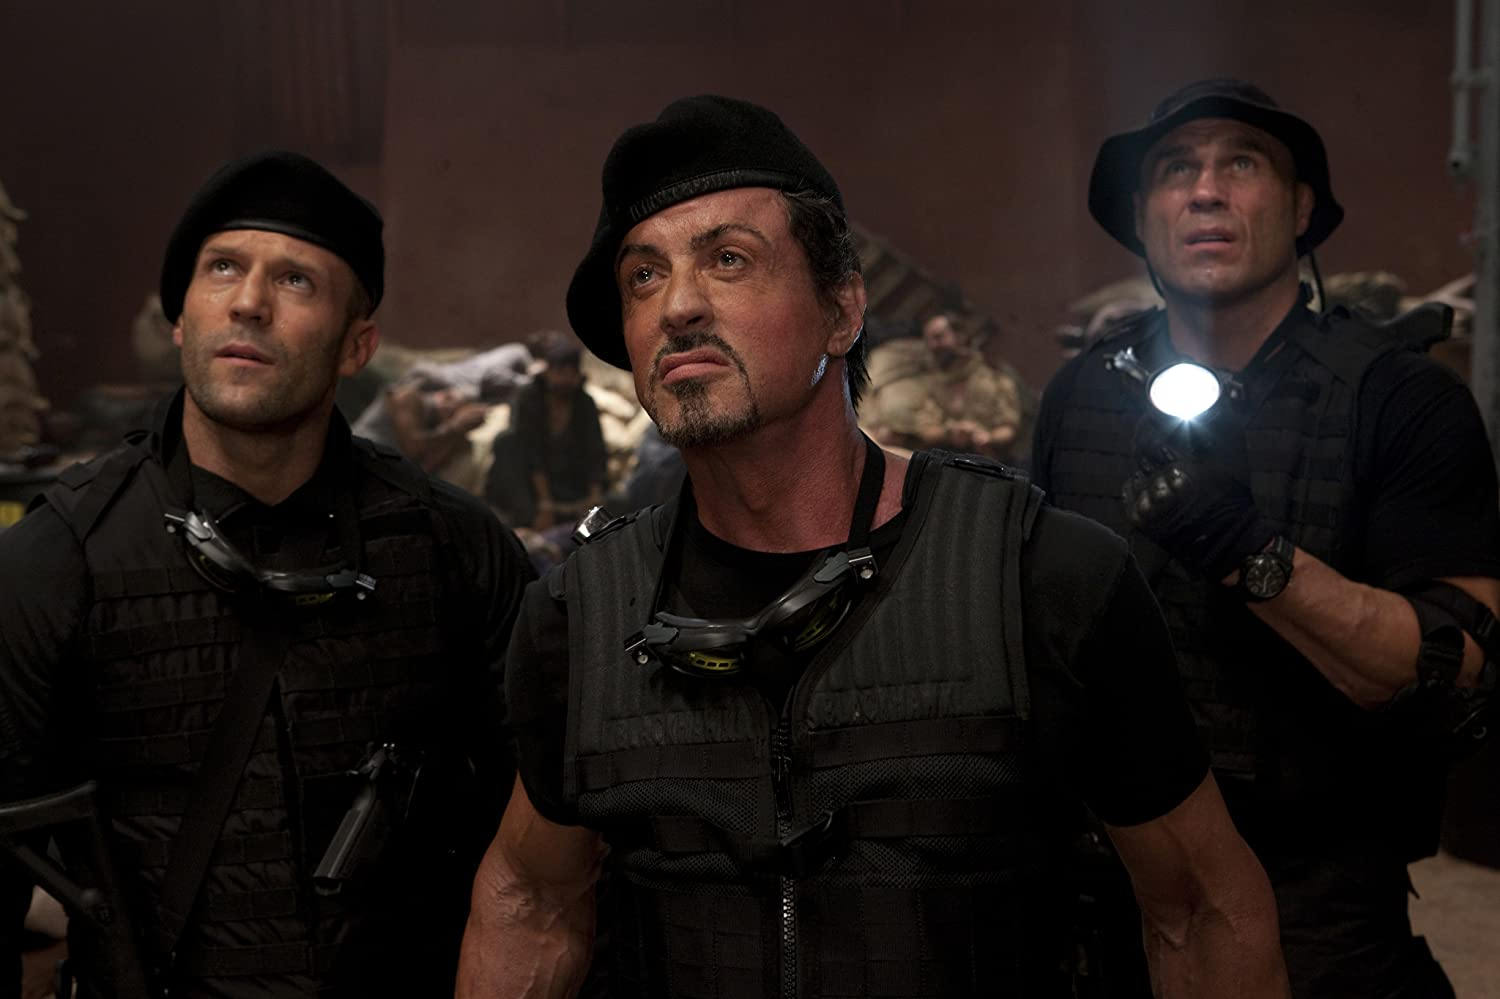 Sylvester Stallone, Jason Statham, and Randy Couture in The Expendables (2010)